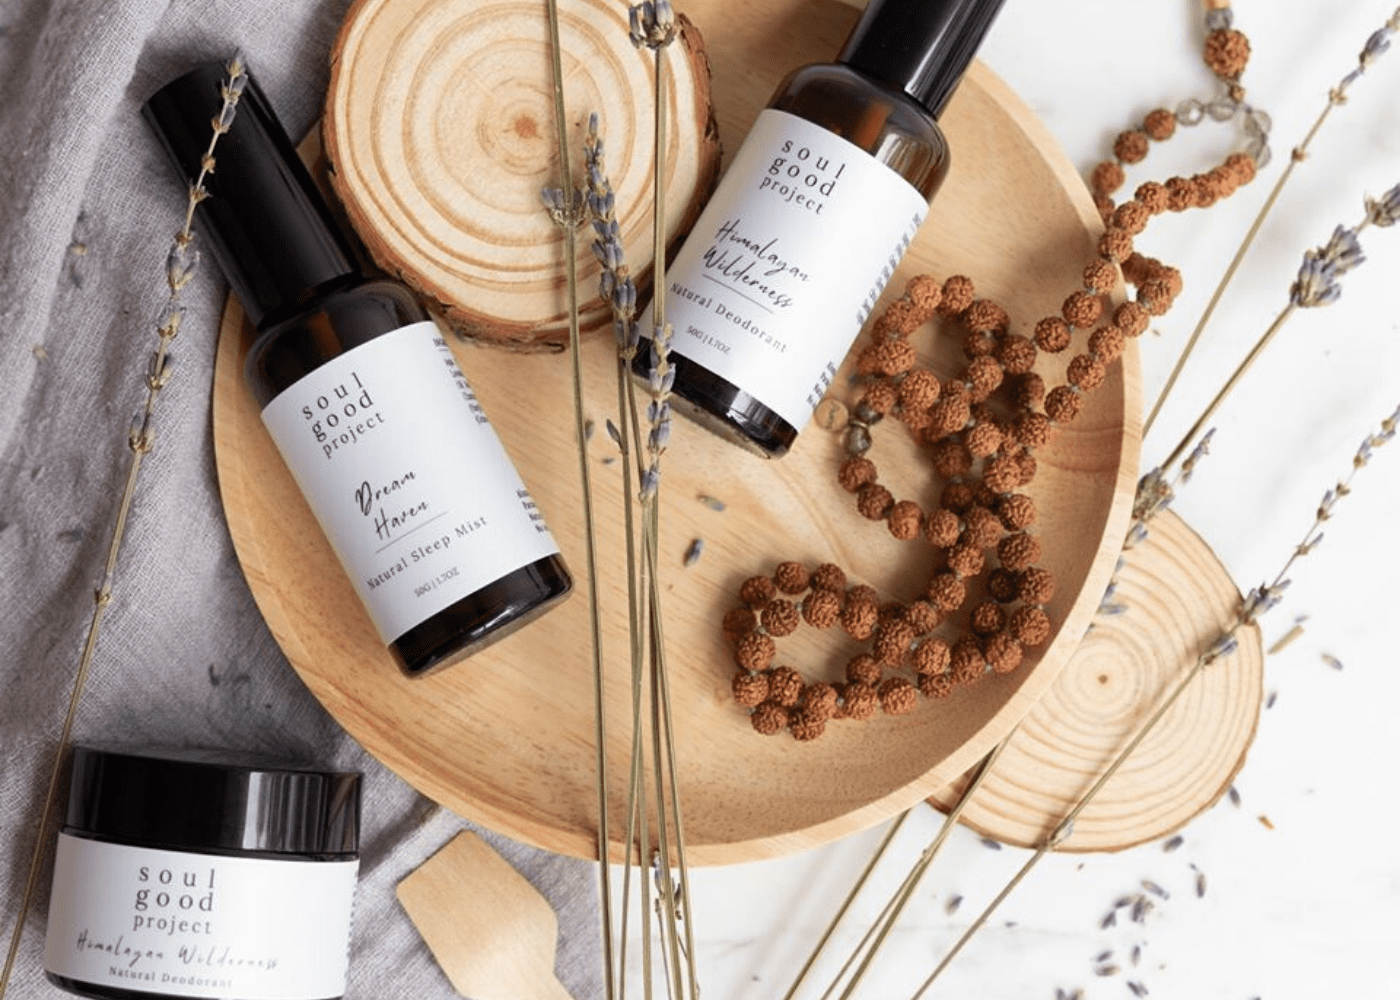 Soul Good Project deodorant spray and balm | February 2020 beauty reviews | Honeycombers Singapore